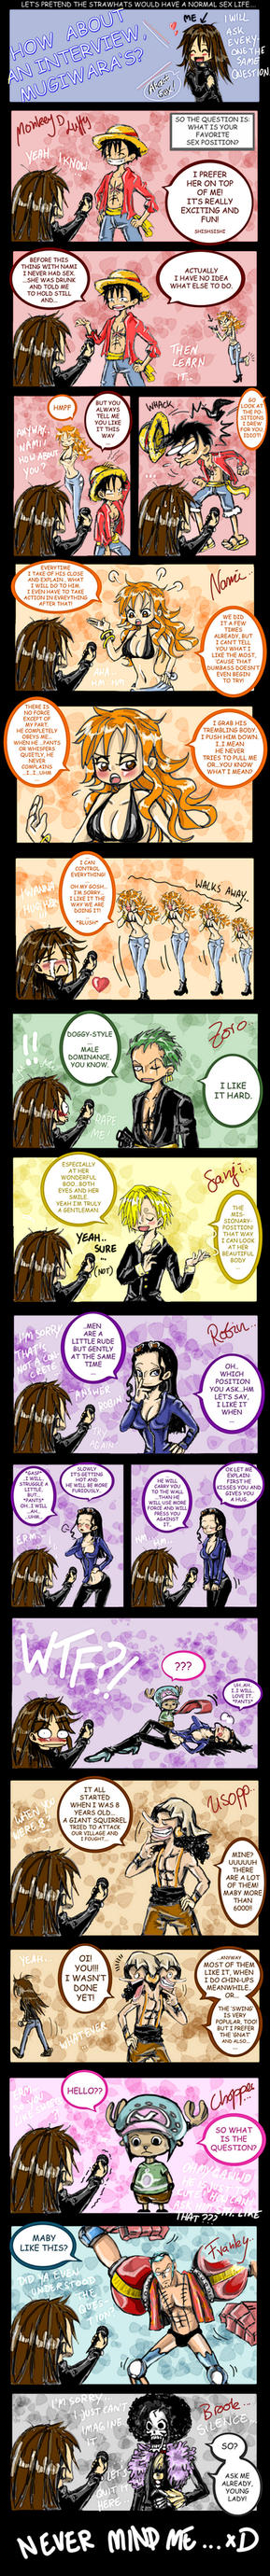 Strawhats Sex Life...xD by zippi44